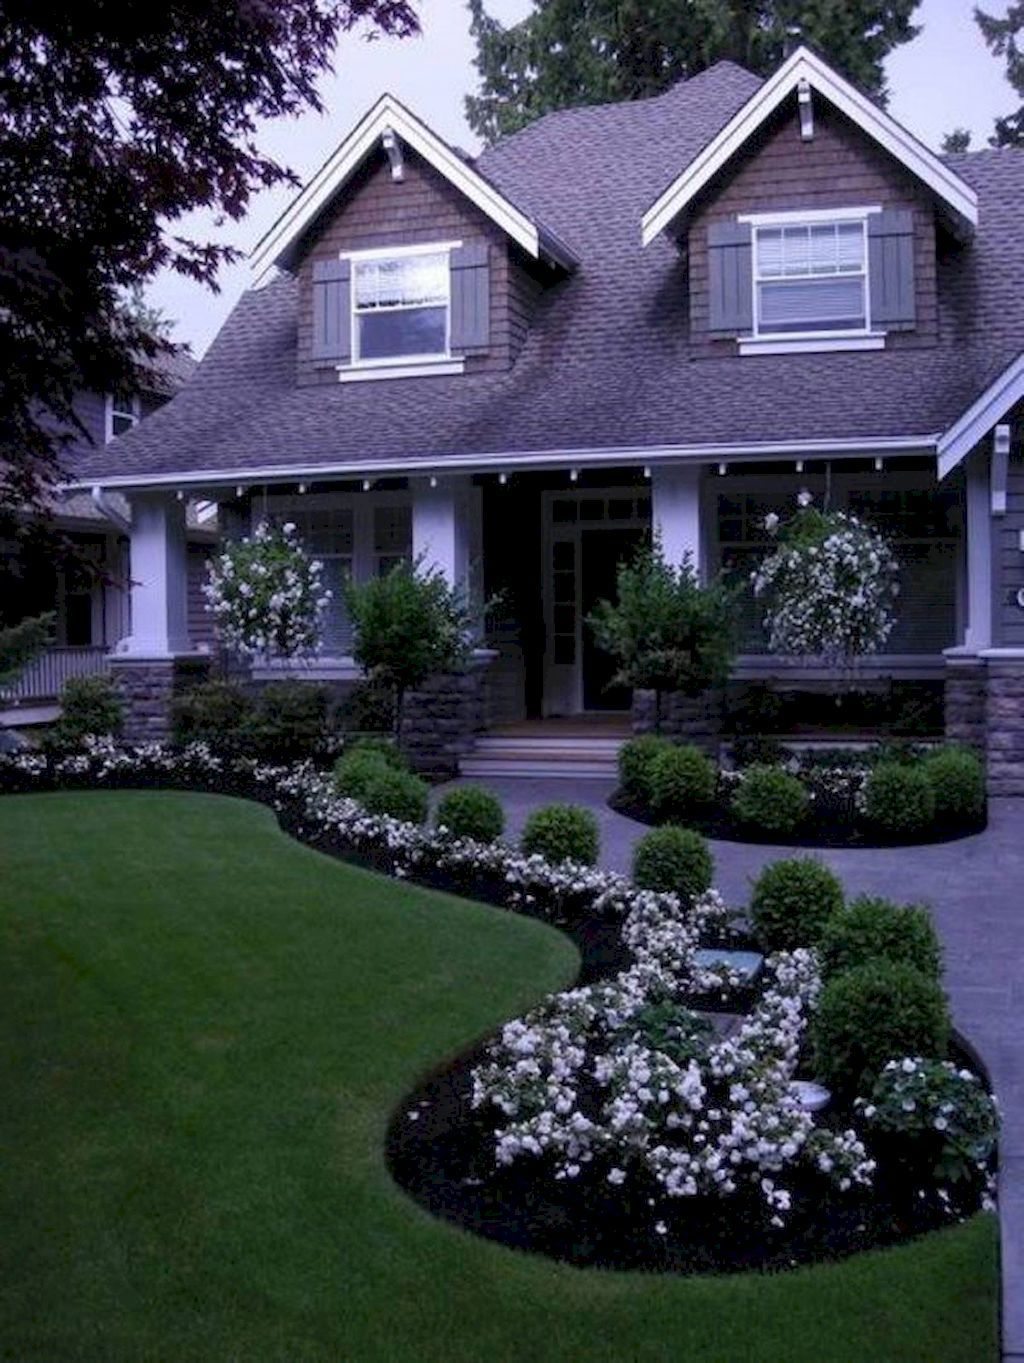 40 beautiful front yard landscaping ideas yard for Lawn design ideas